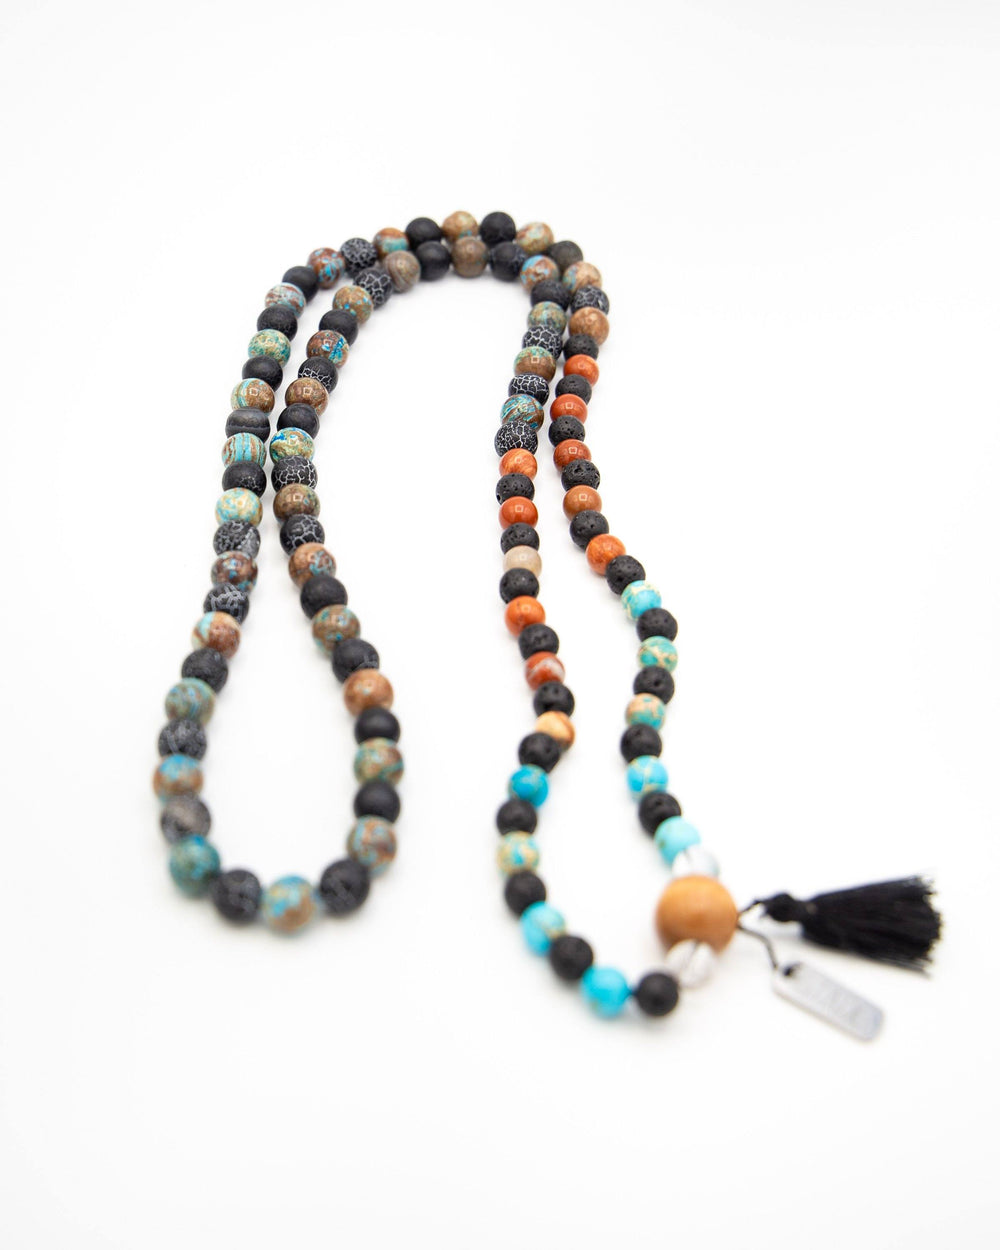 The Shaman Stone Necklace - FIRE and ICE STAIX One Size Fits All